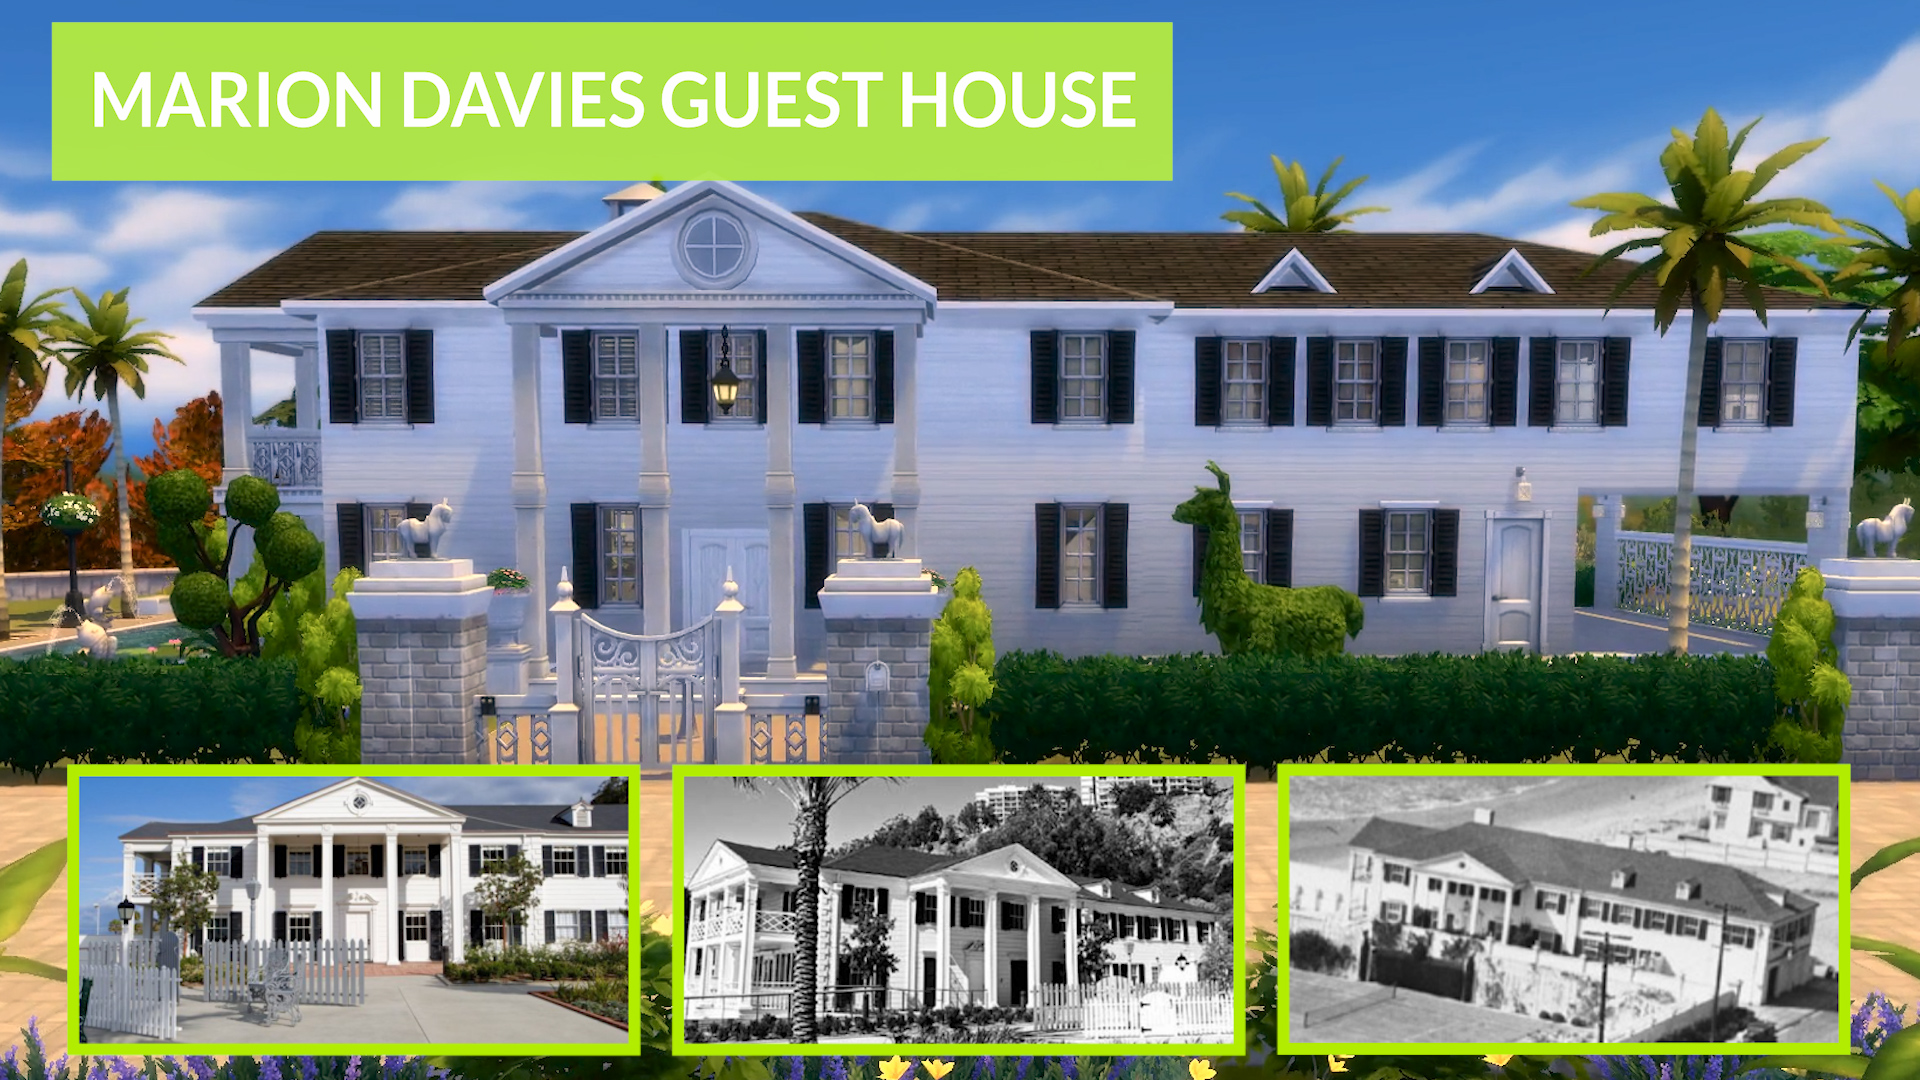 Tremendous Mod The Sims Marion Davies Guest House Ts4 Download Free Architecture Designs Viewormadebymaigaardcom